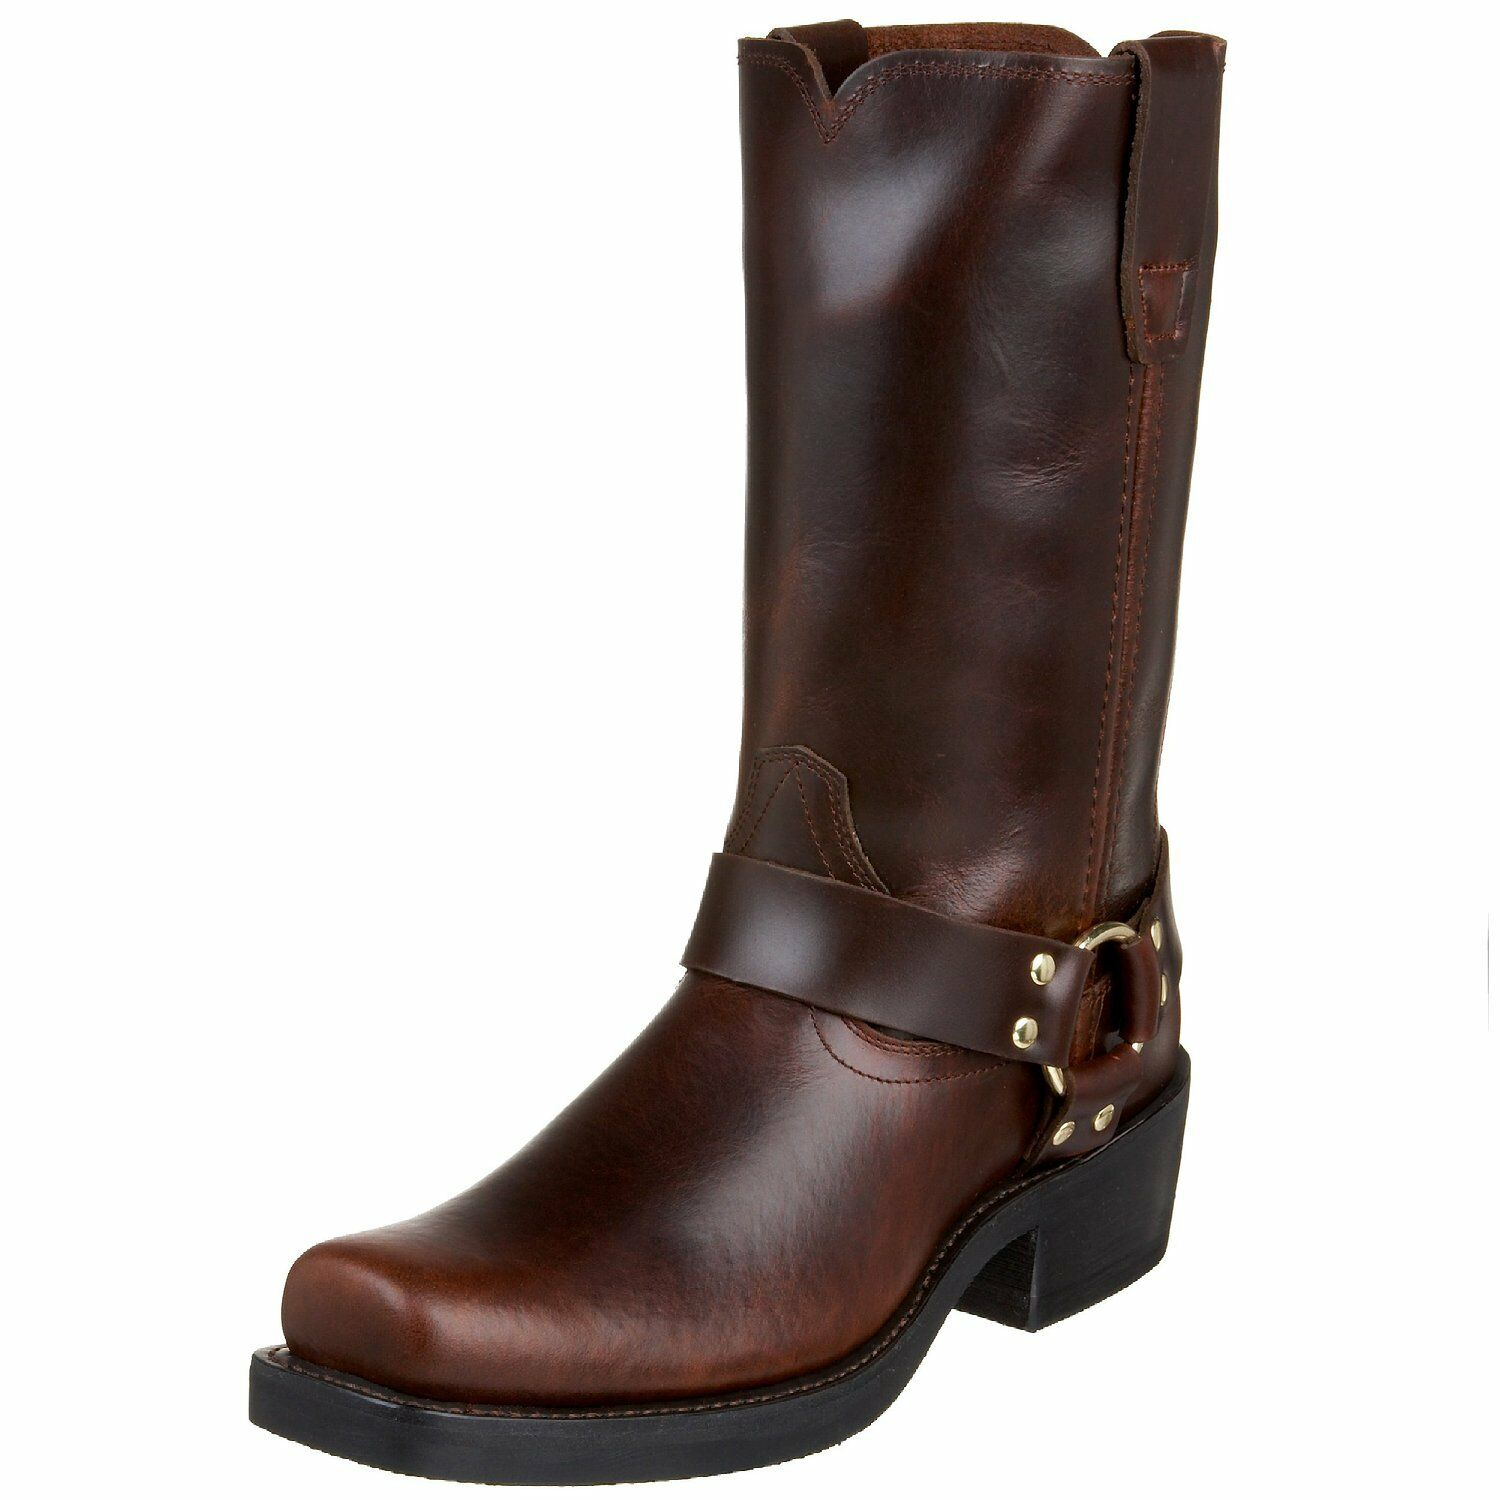 Durango Uomo Tall Motorcycle Harness Stivali Pull Up Rubbed Brown Pelle DB514 EE